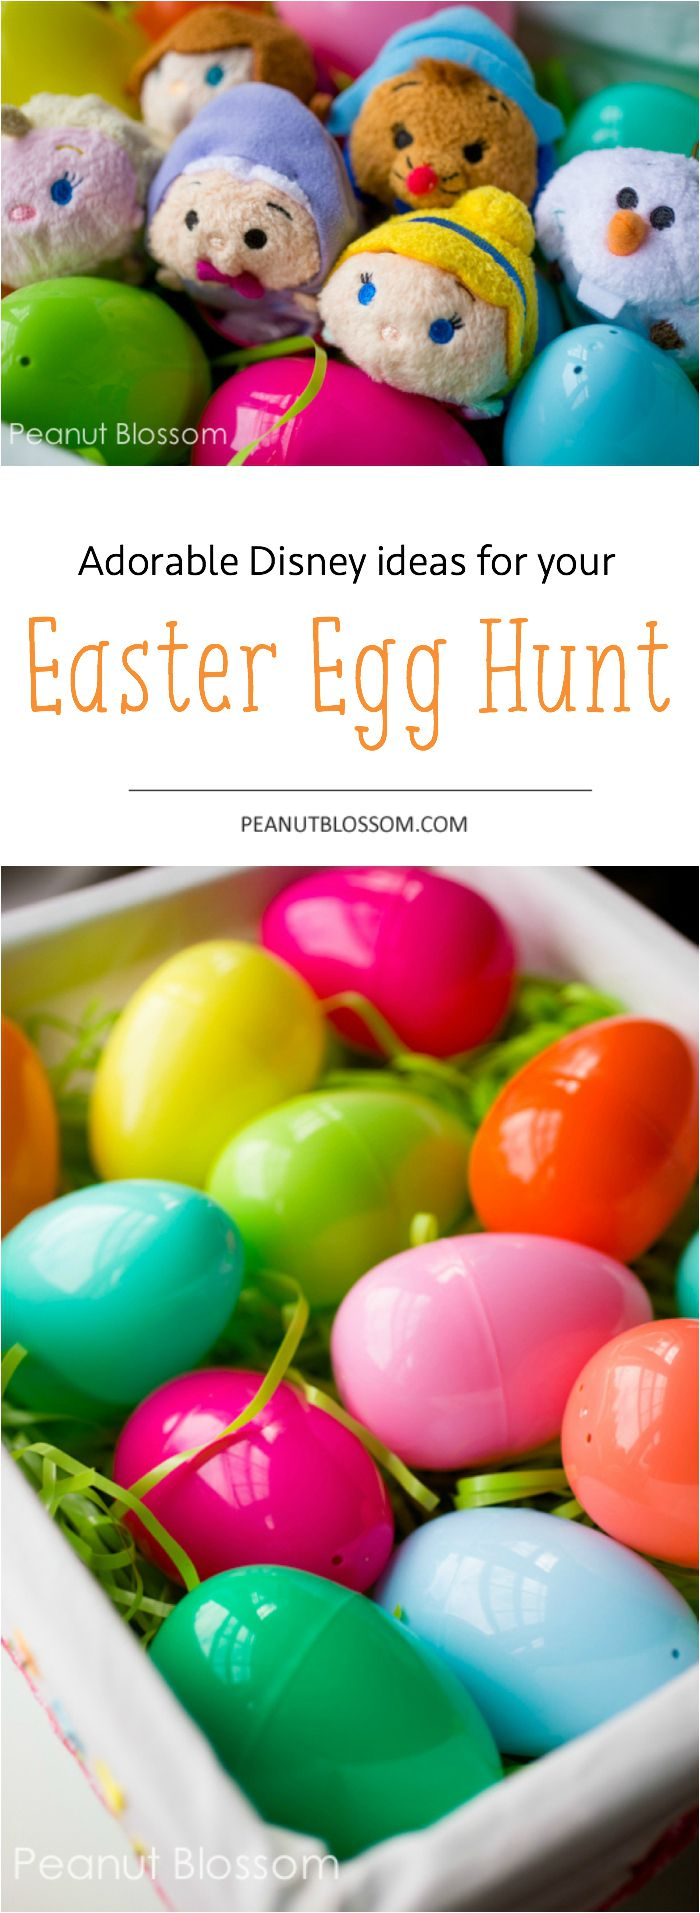 Looking for some non-candy ideas for your Easter egg hunt? Check out this adorable filler for those plastic eggs!! My kids would flip! Perfect for Disney lovers.